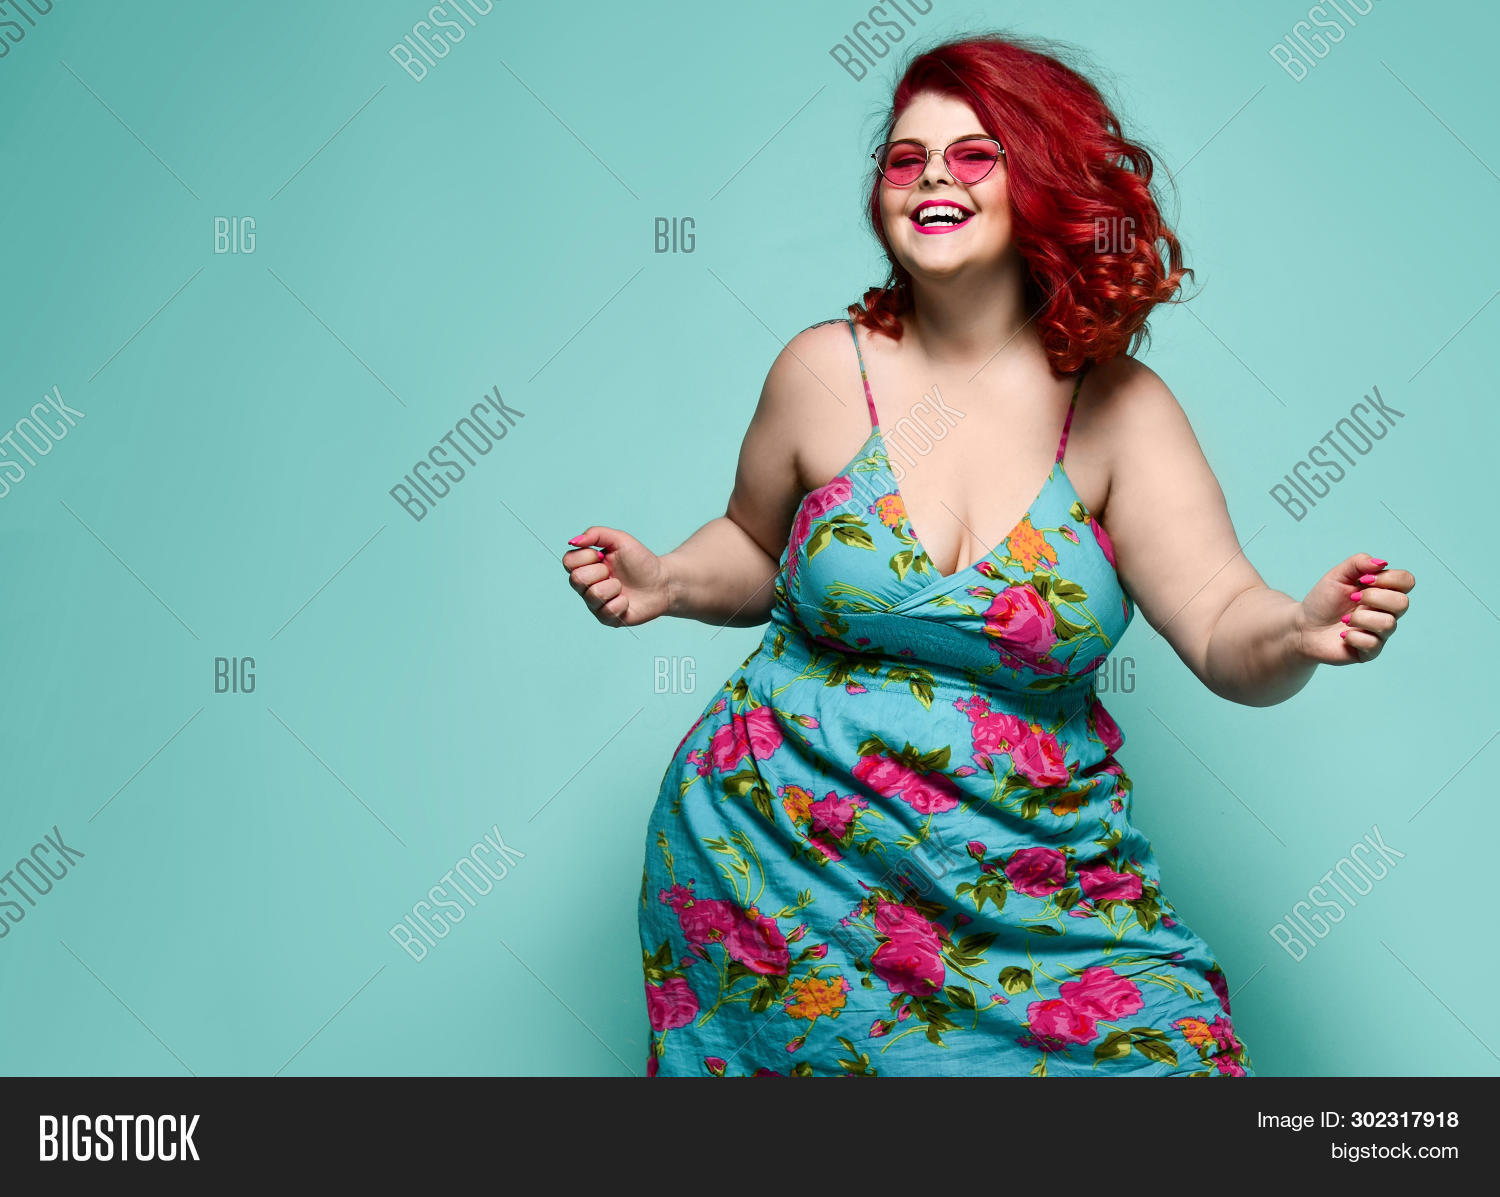 advertising,attractive,beauty,big,body,business,caucasian,celebration,chubby,clothes,club,colorful,crm,curvy,cute,diet,emancipation,emotion,fat,female,feminism,festival,figure,flowers,girl,hair,happiness,happy,lady,large,lifestyle,luck,model,obese,offer,overweight,personal,pink,playing,plus-size,red,sale,sensual,smile,sundress,surprise,telemarketing,weight,woman,young